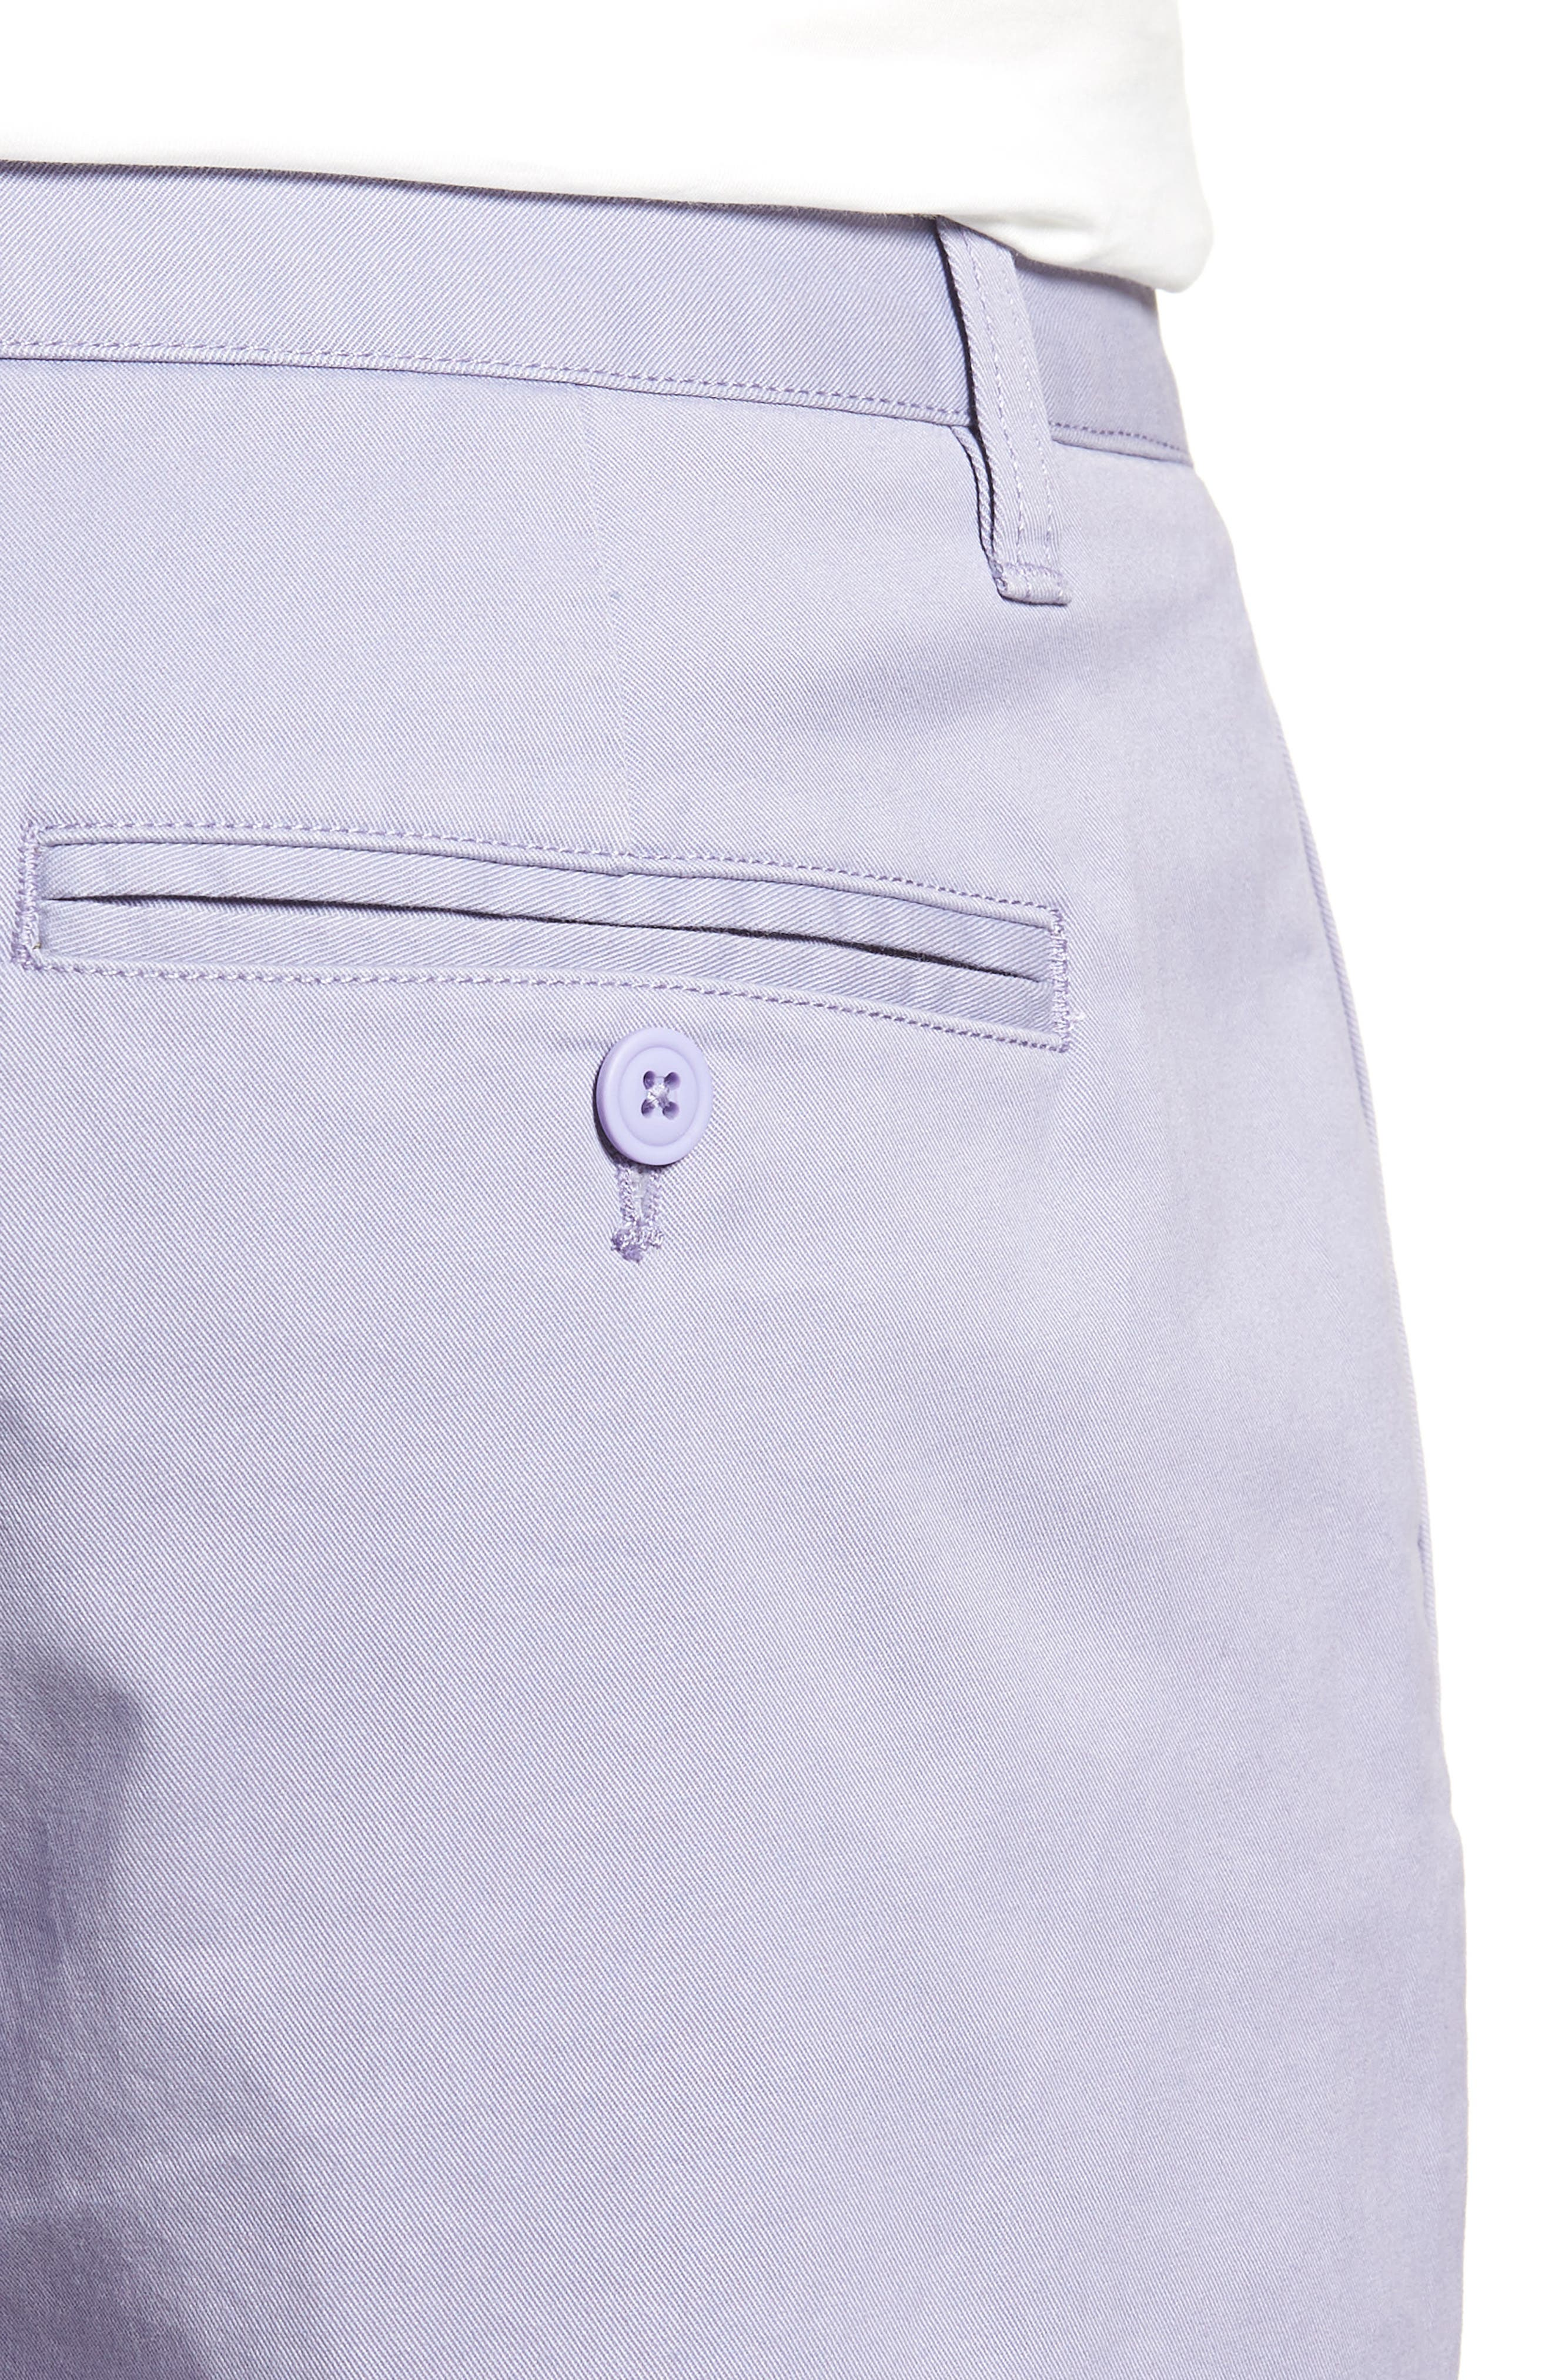 Stretch Washed Chino 5-Inch Shorts,                             Alternate thumbnail 99, color,